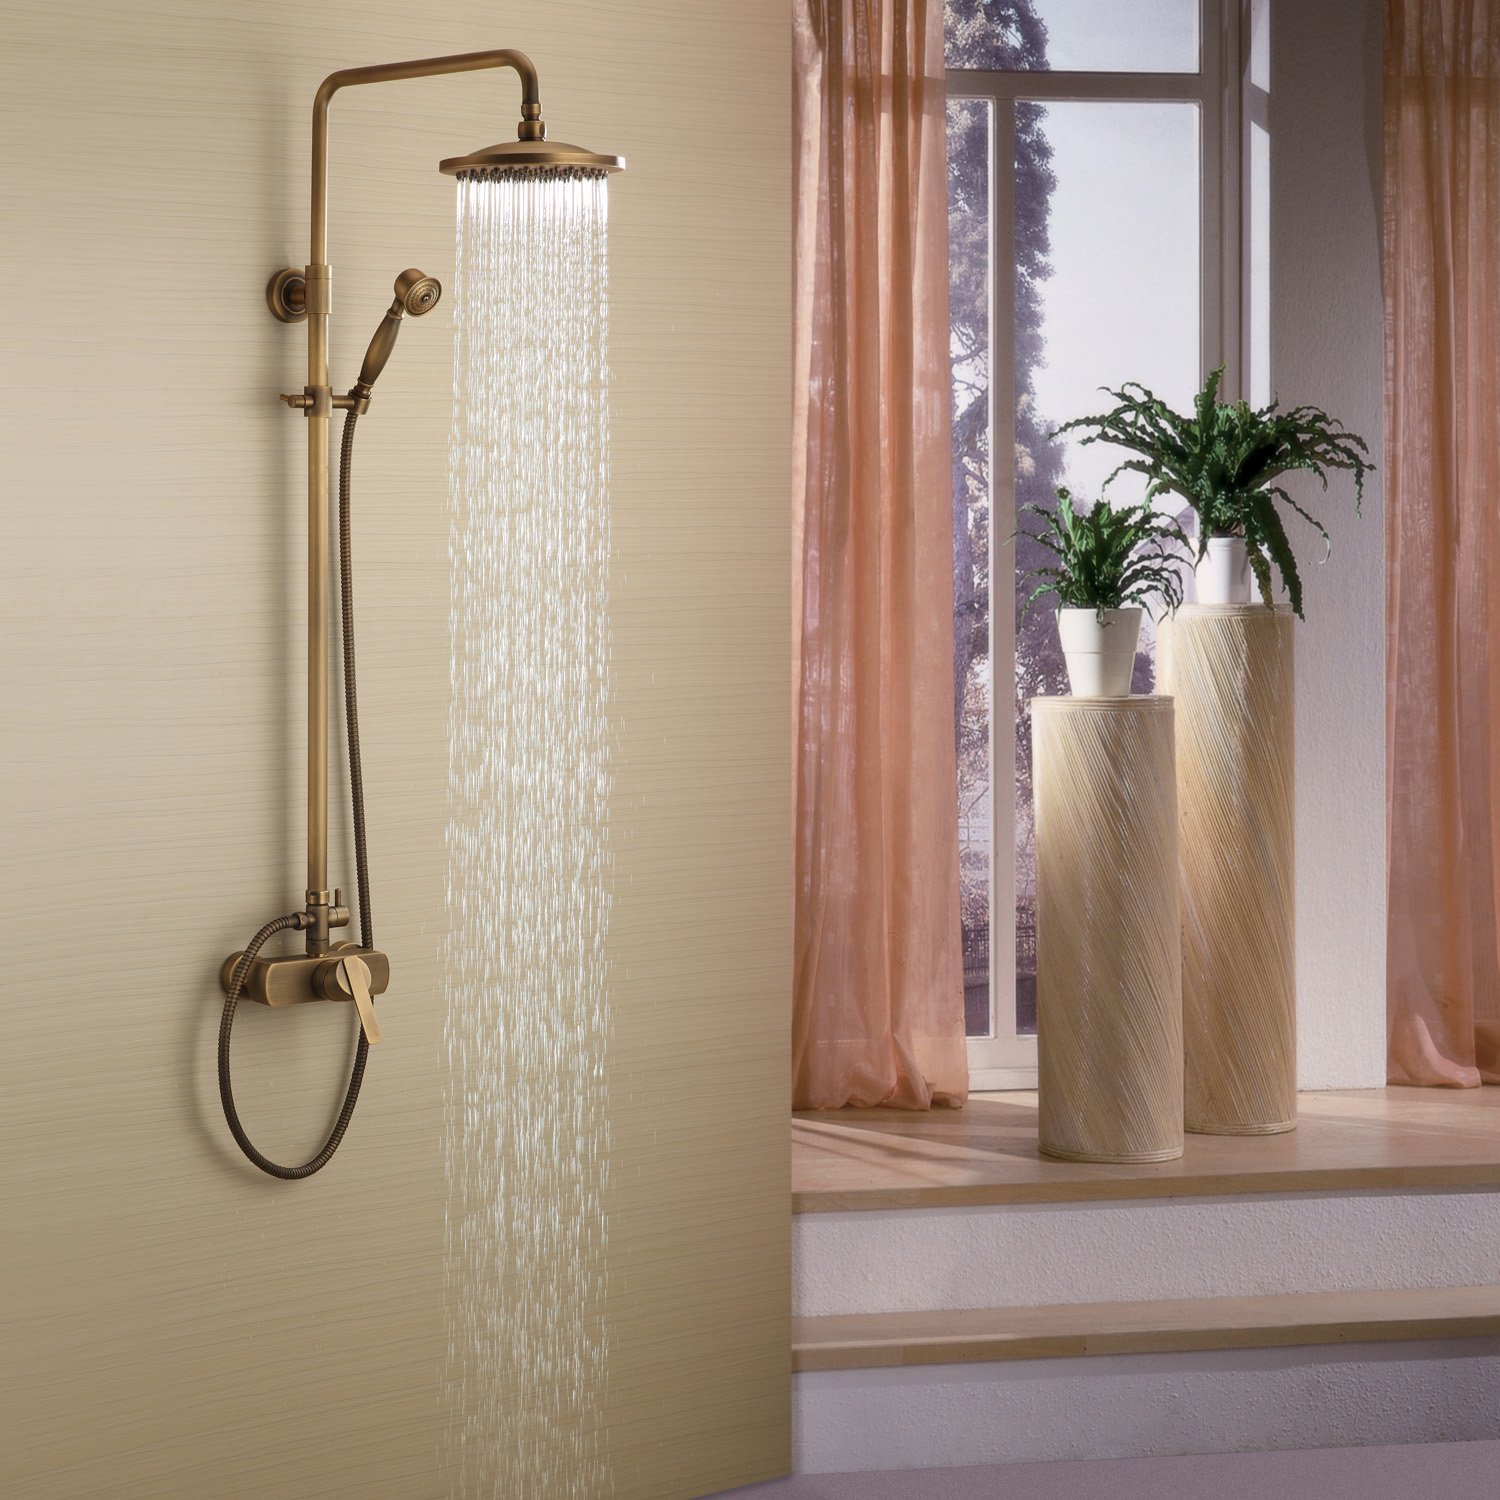 LightInTheBox Sprinkle Antique Brass Tub Shower Faucet with 8 inch ...